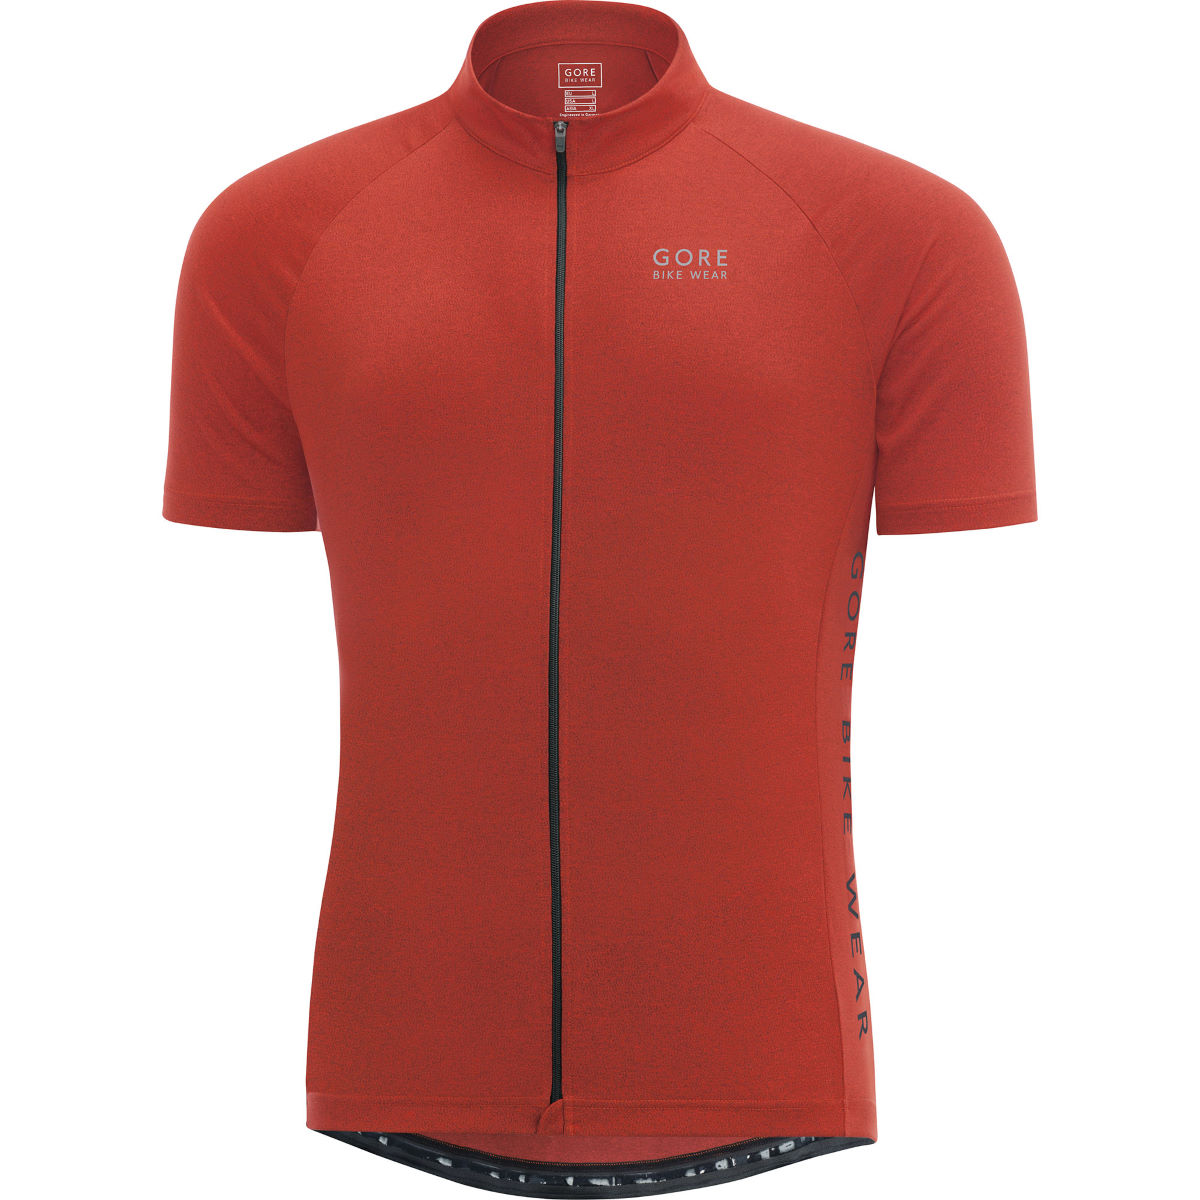 Maillot Gore Bike Wear Element 2.0 (manches courtes) - S Orange